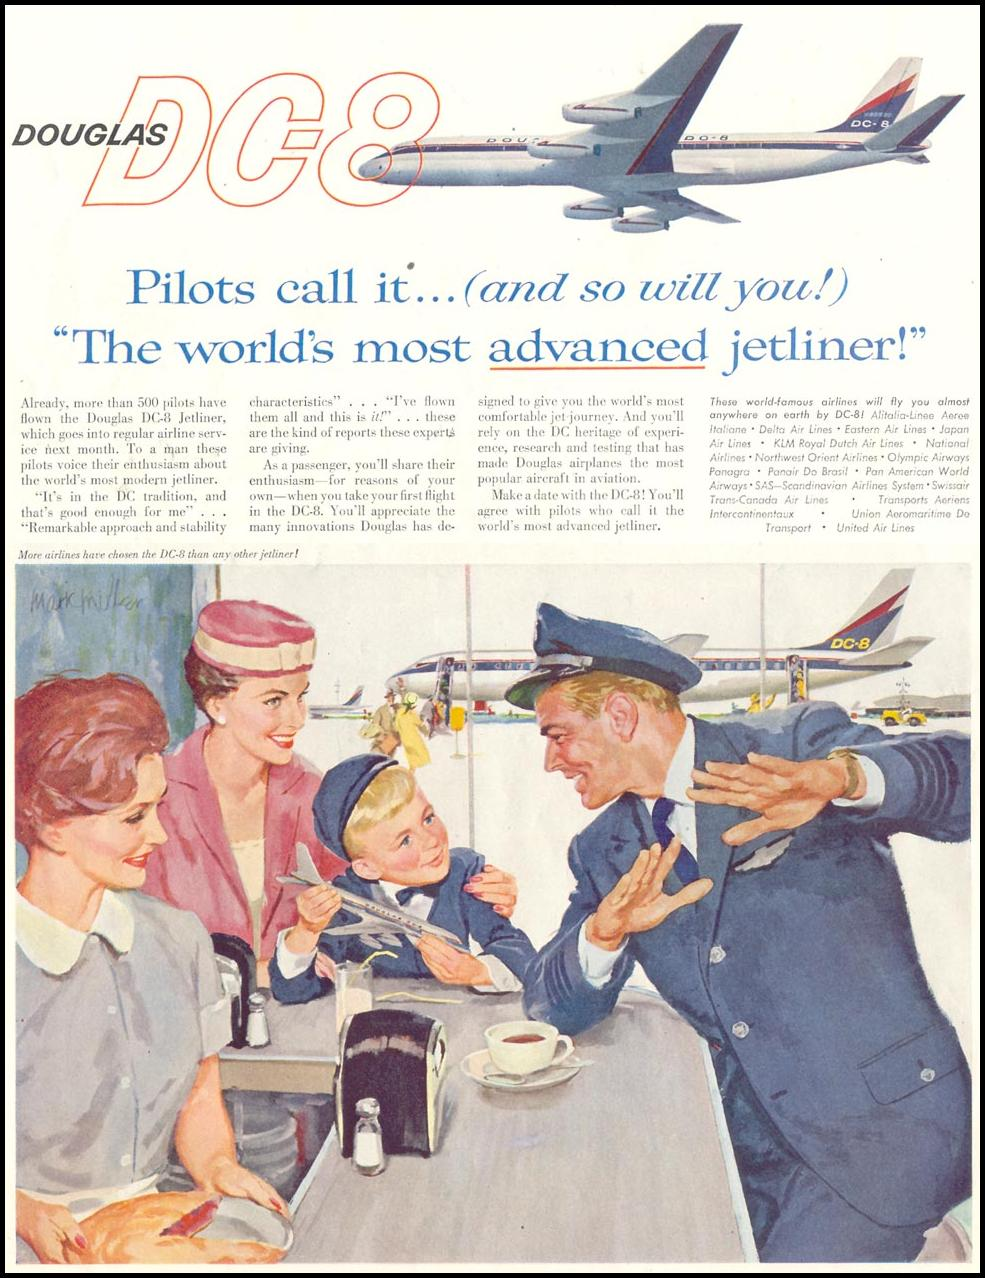 DOUGLAS DC-8 JETLINER SATURDAY EVENING POST 08/15/1959